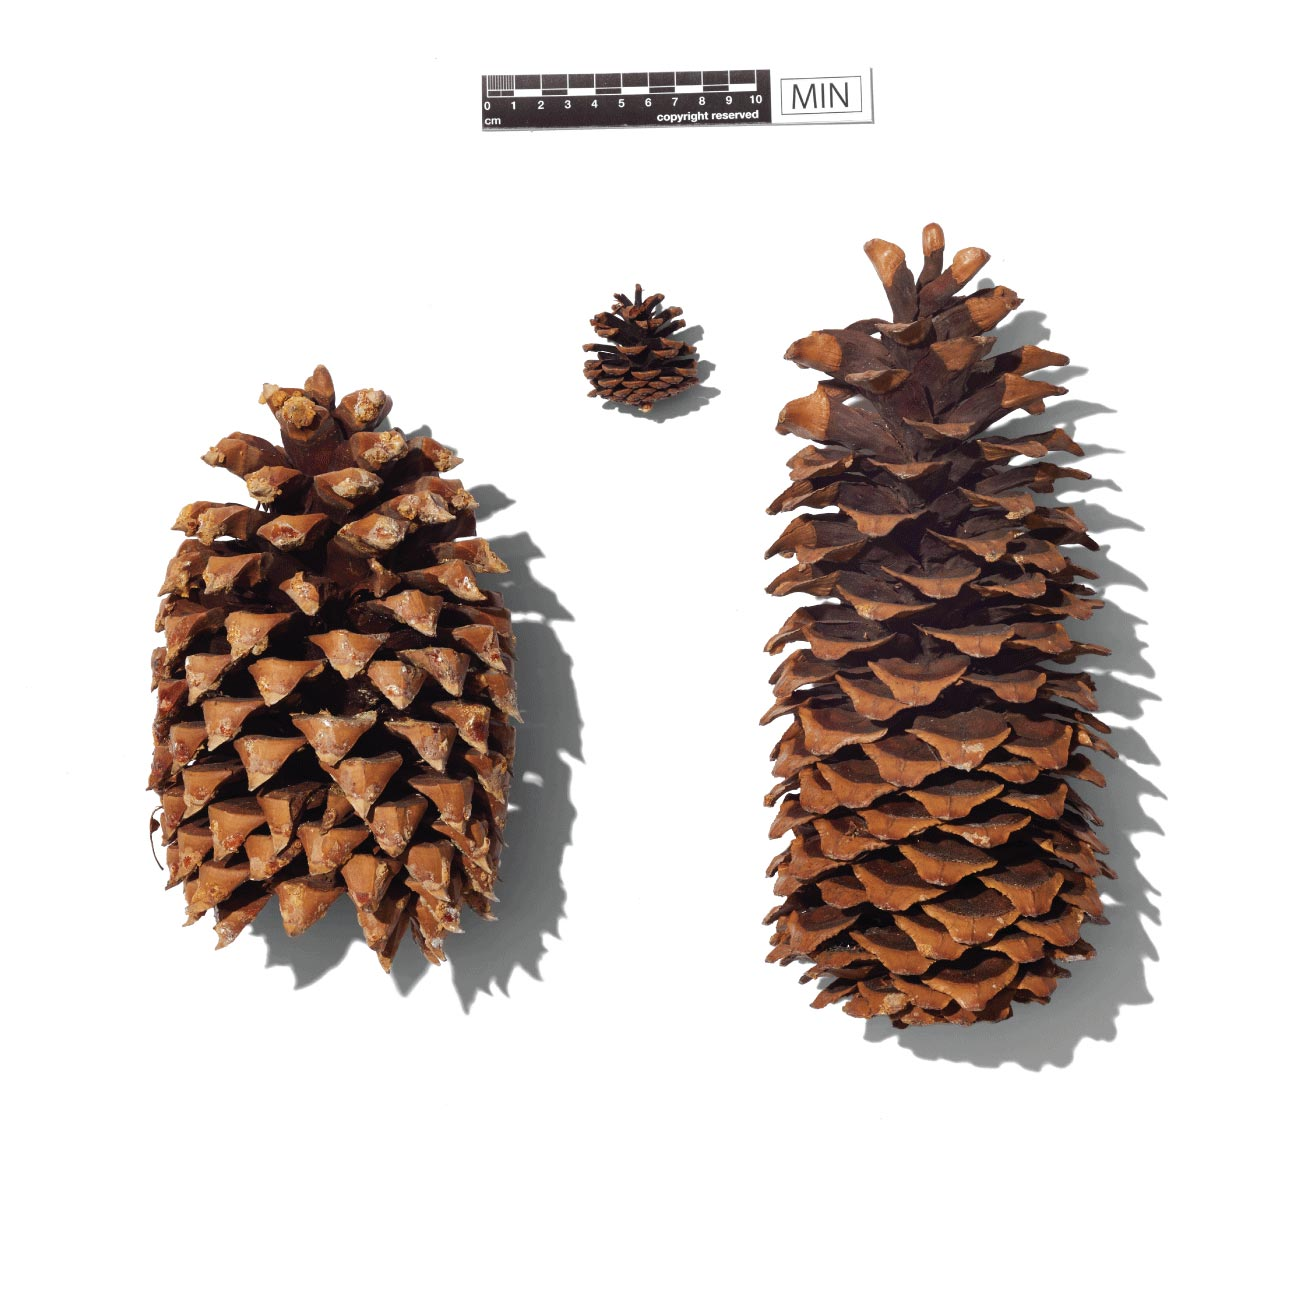 Pinecone specimens